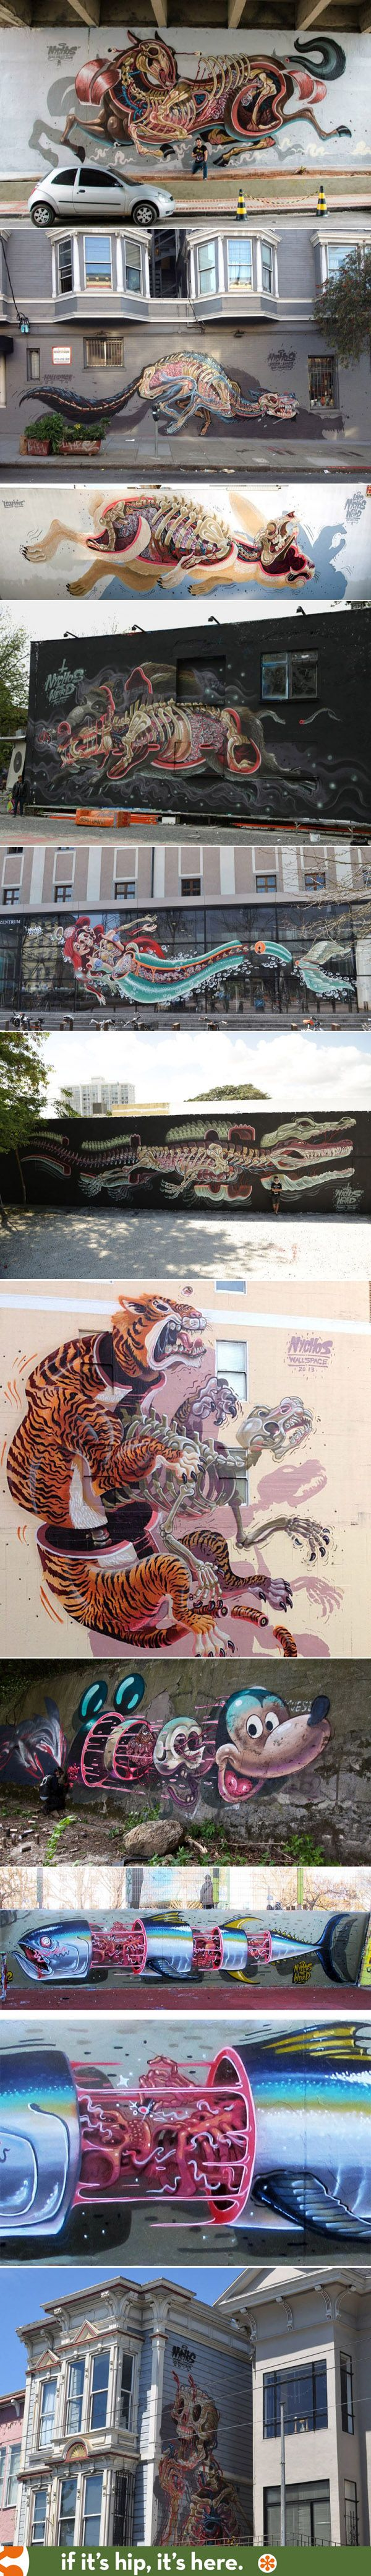 A look at the work of street Artist NYCHOS. #Graffiti #Street_Art